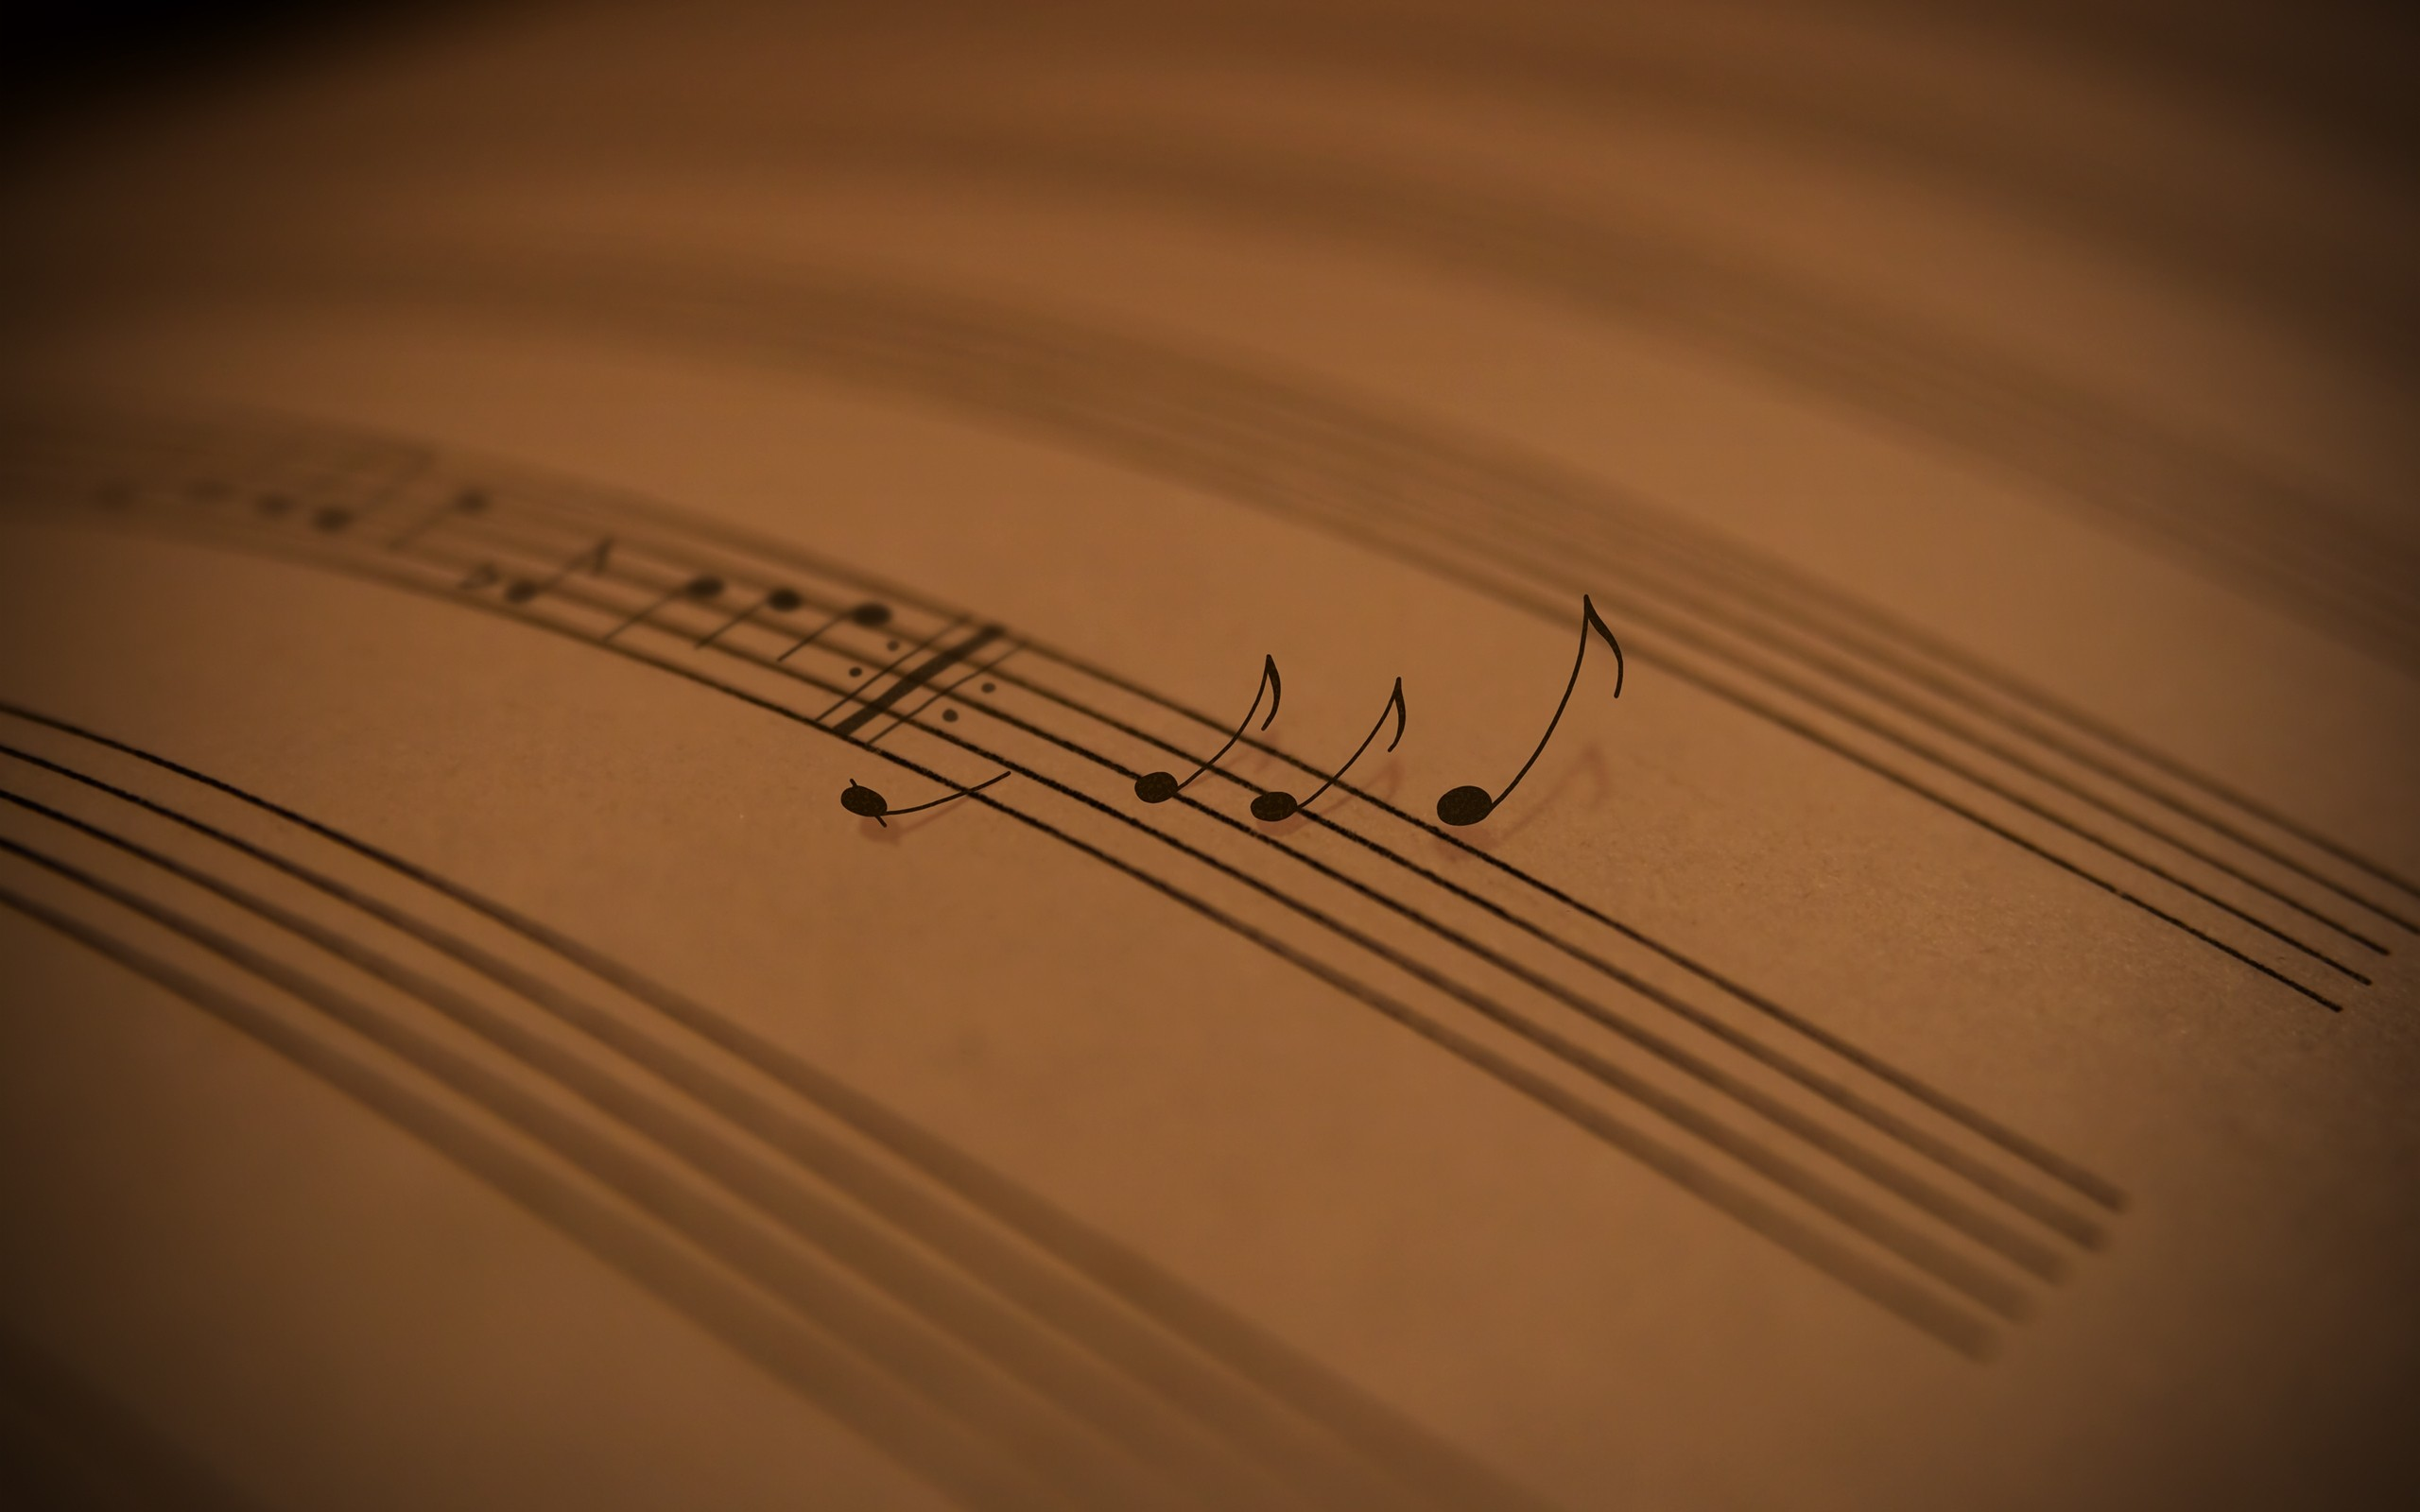 Music Paper Notes Wallpaper 2560x1600 px